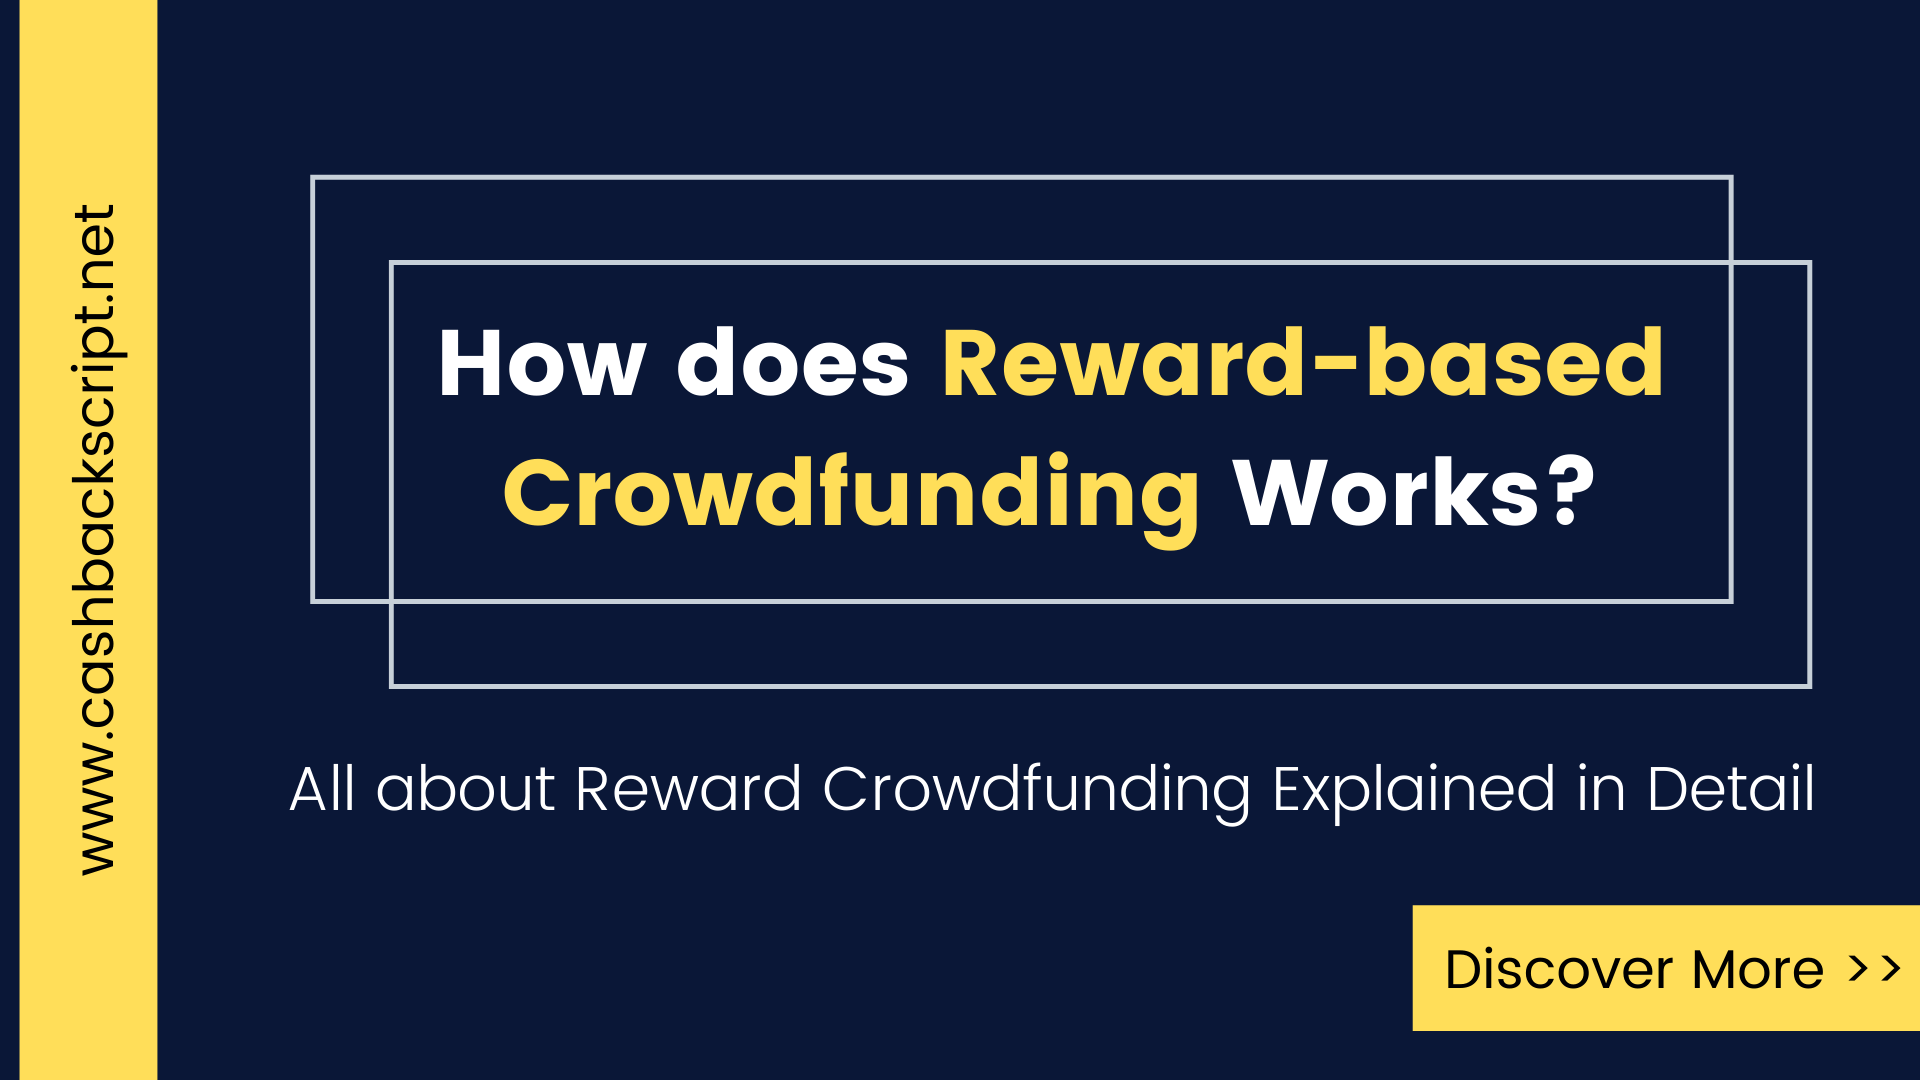 How does Rewards-based Crowdfunding Works?